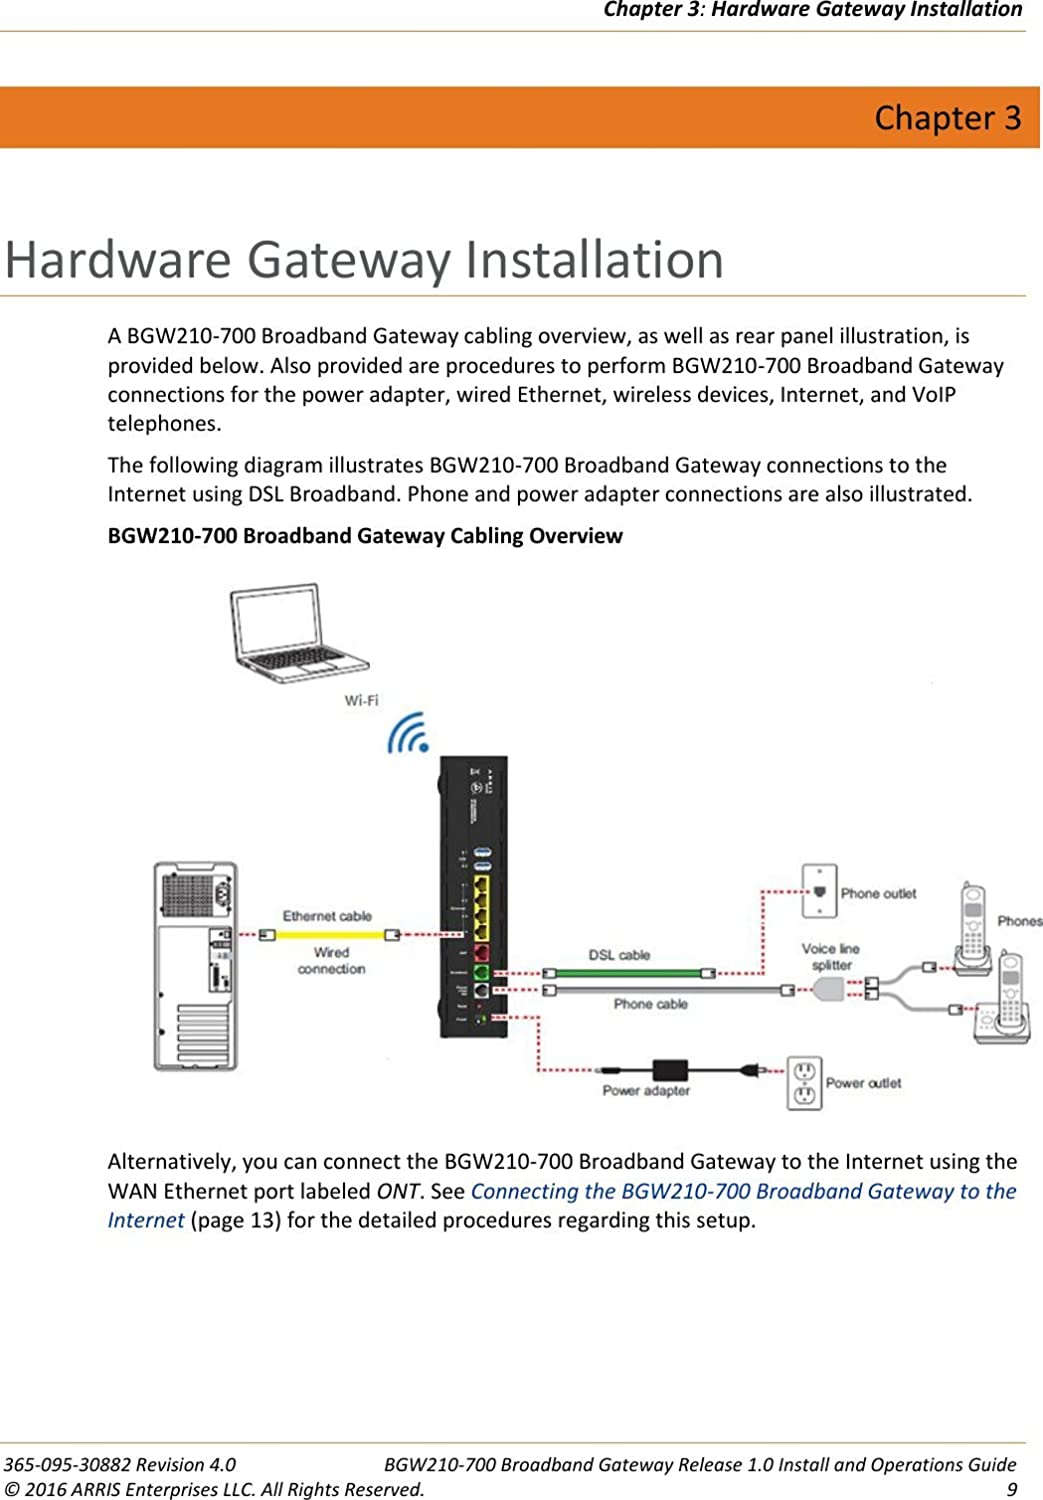 att cat 5 diagram amazon com at t arris bgw210 700 802 11b g n ac 400mw bonded  amazon com at t arris bgw210 700 802